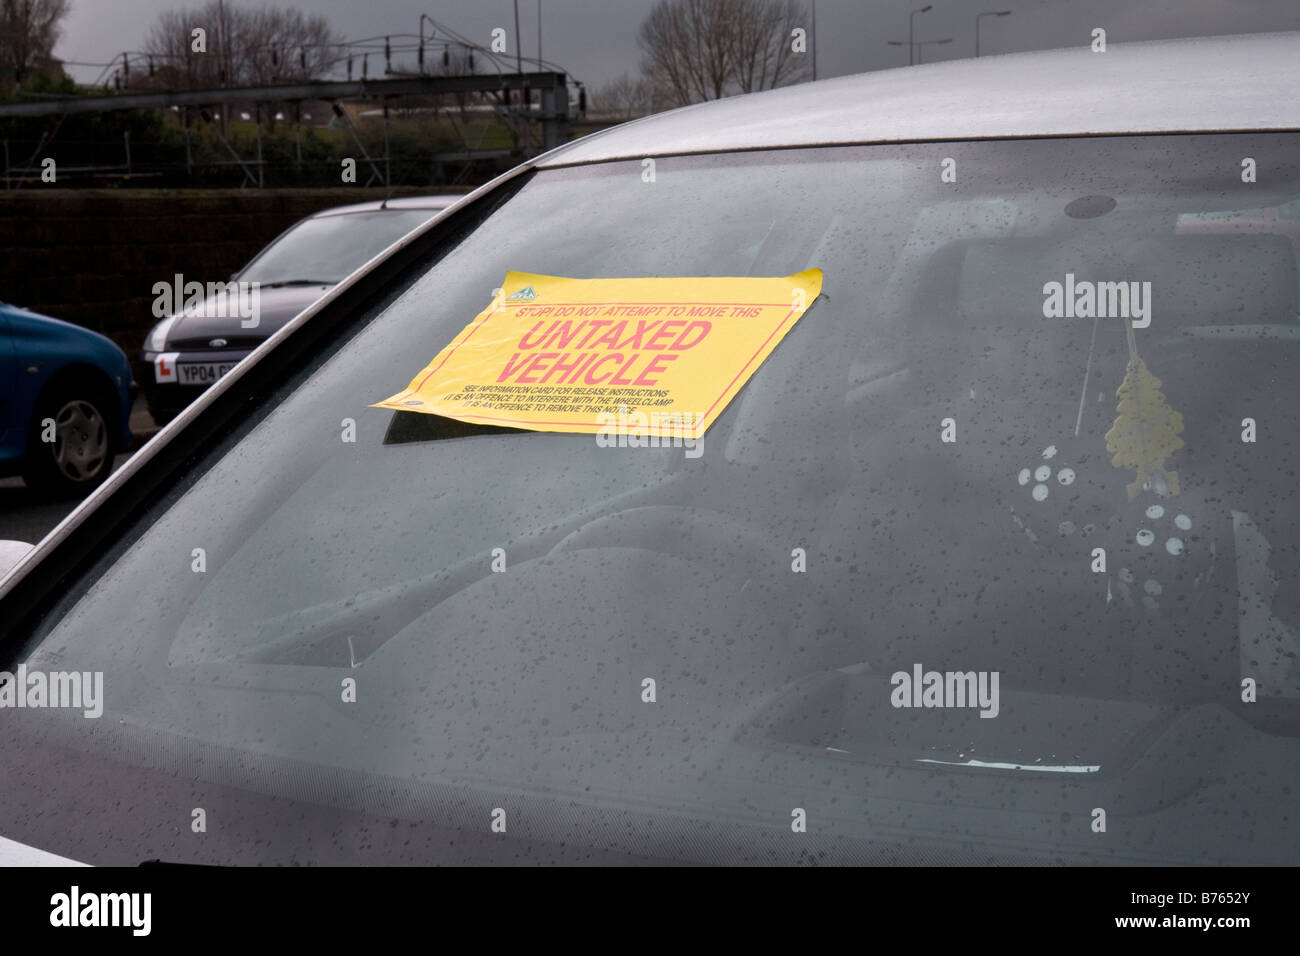 Untaxed Vehicle notice stuck on a car windscreen. Stock Photo